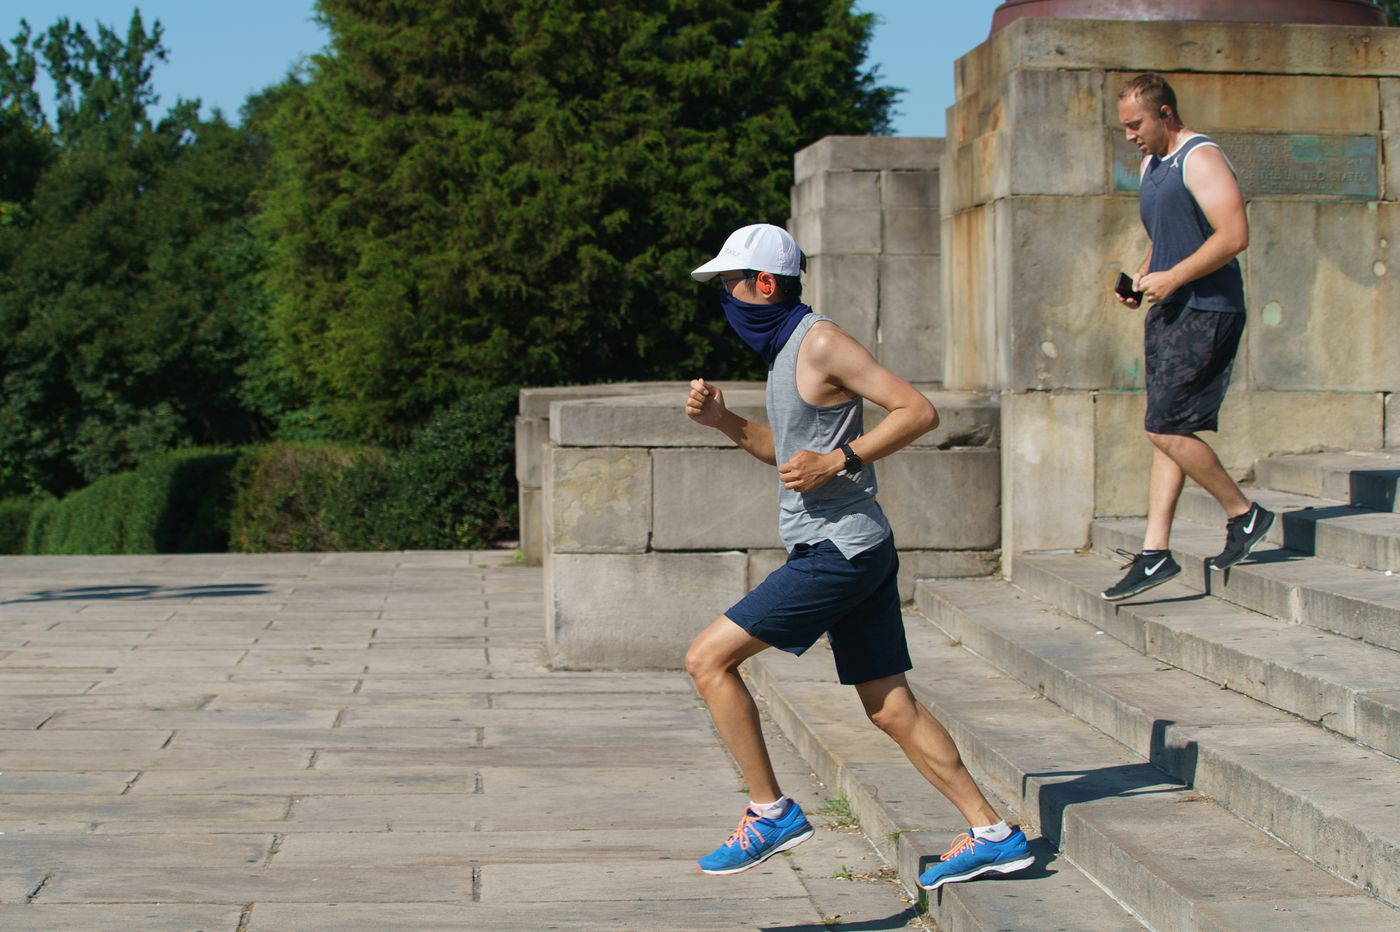 DIY Broad Street Run: Here are some 10-mile routes to train for